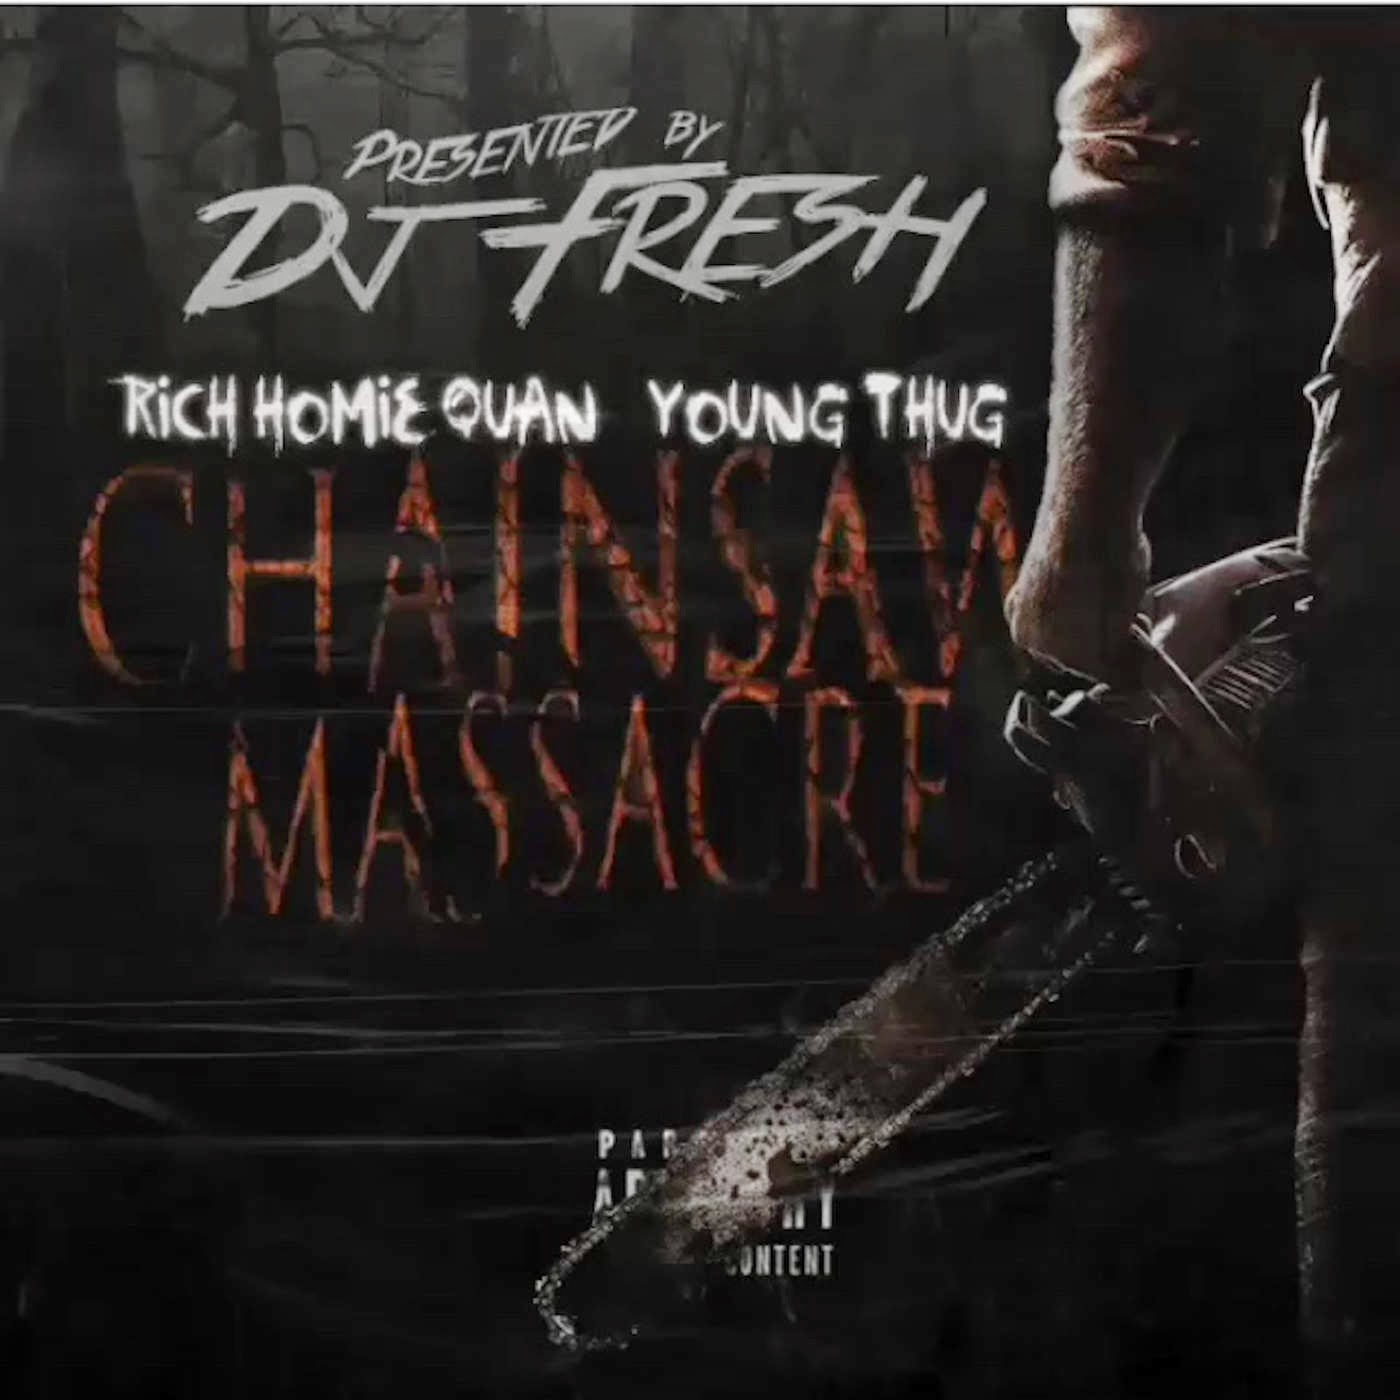 DJ Fresh - Chainsaw Massacre (feat. Rich Homie Quan & Young Thug) - Single Cover